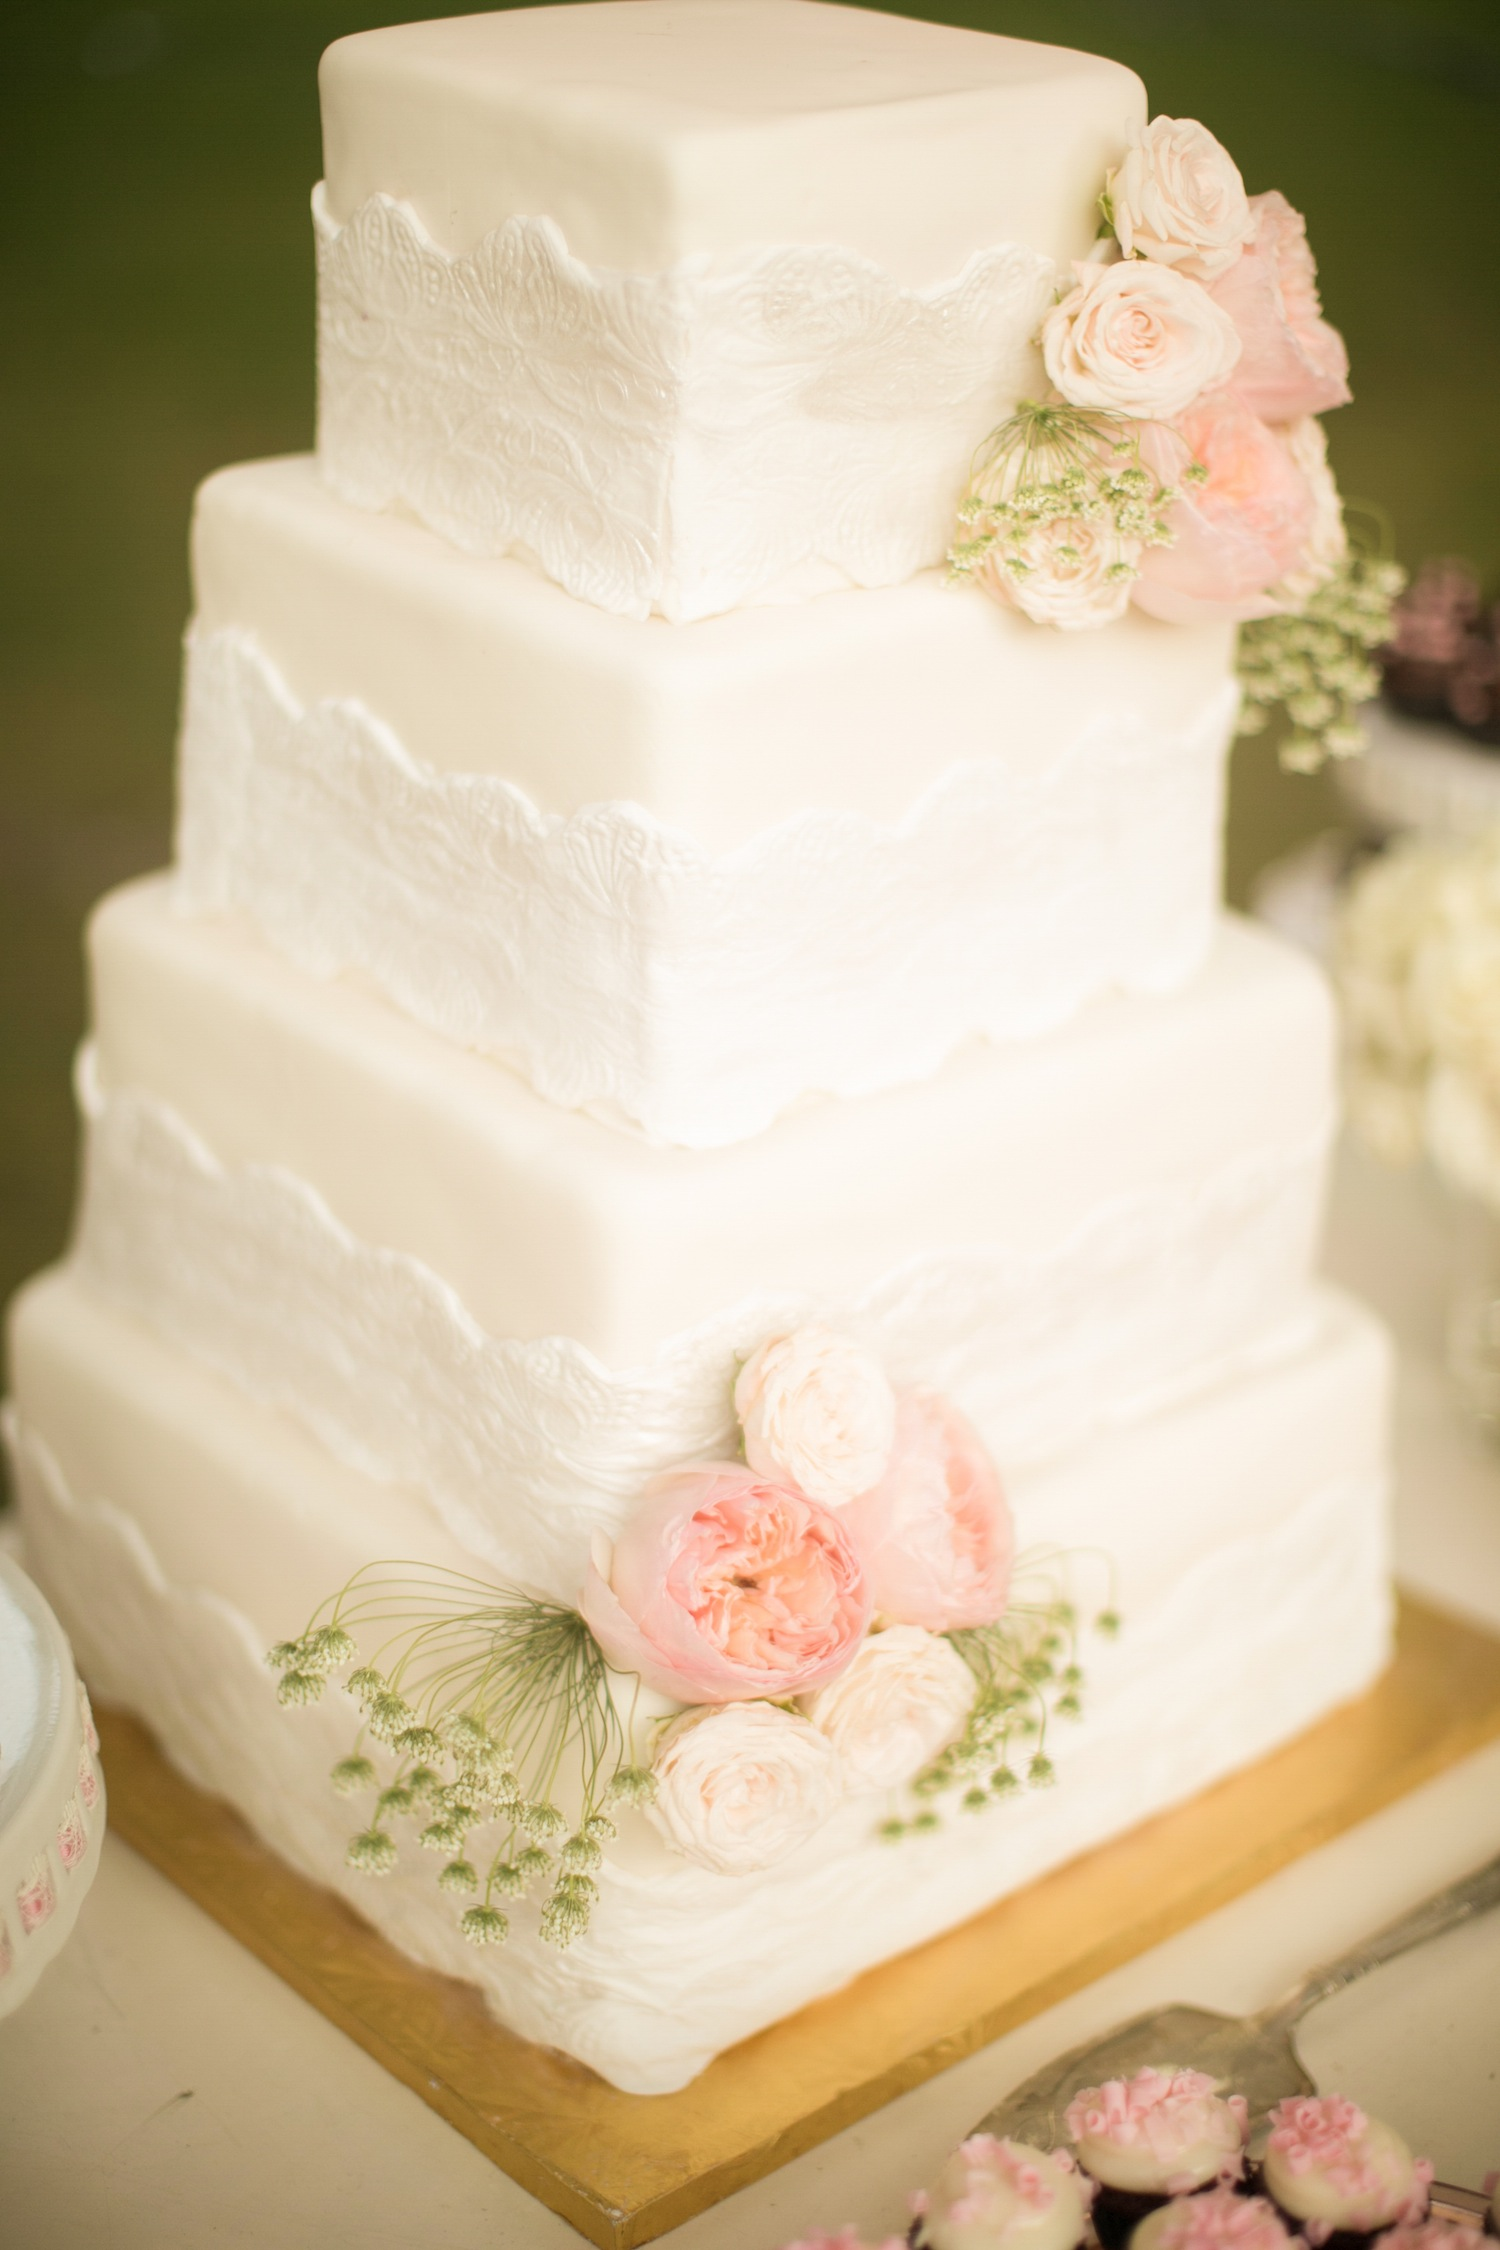 Wedding Cakes: Pretty Wedding Confections with Lace Patterns ...